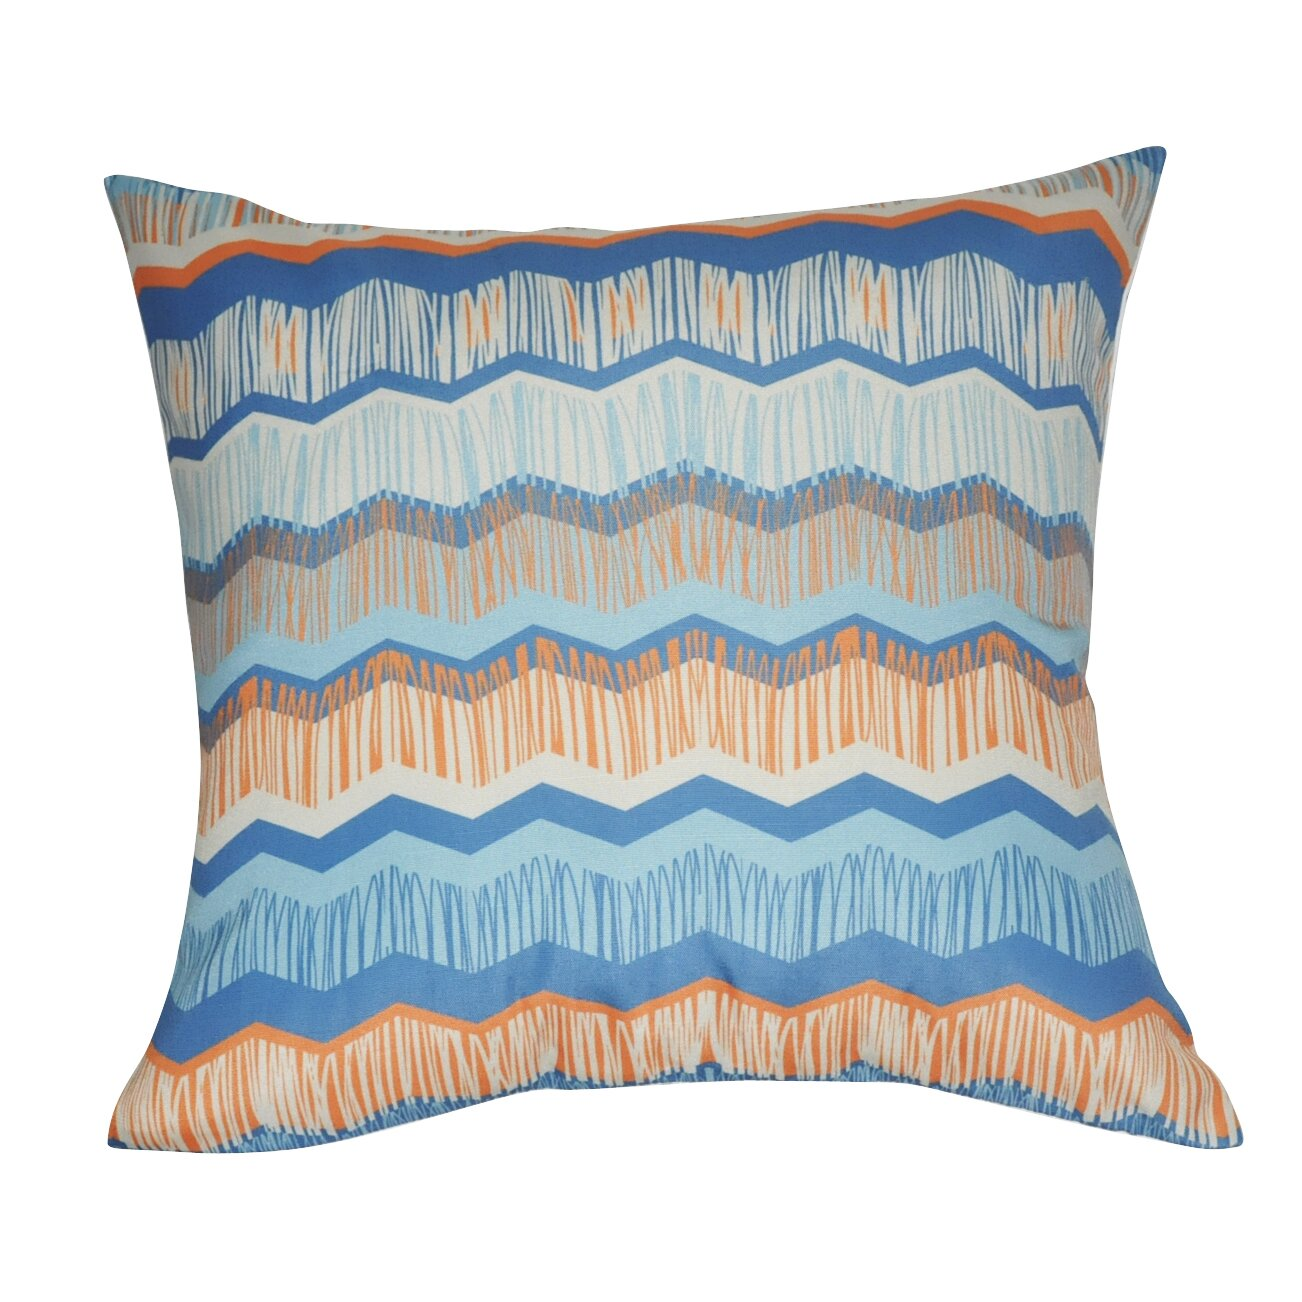 Loom and Mill Chervon Decorative Throw Pillow Wayfair